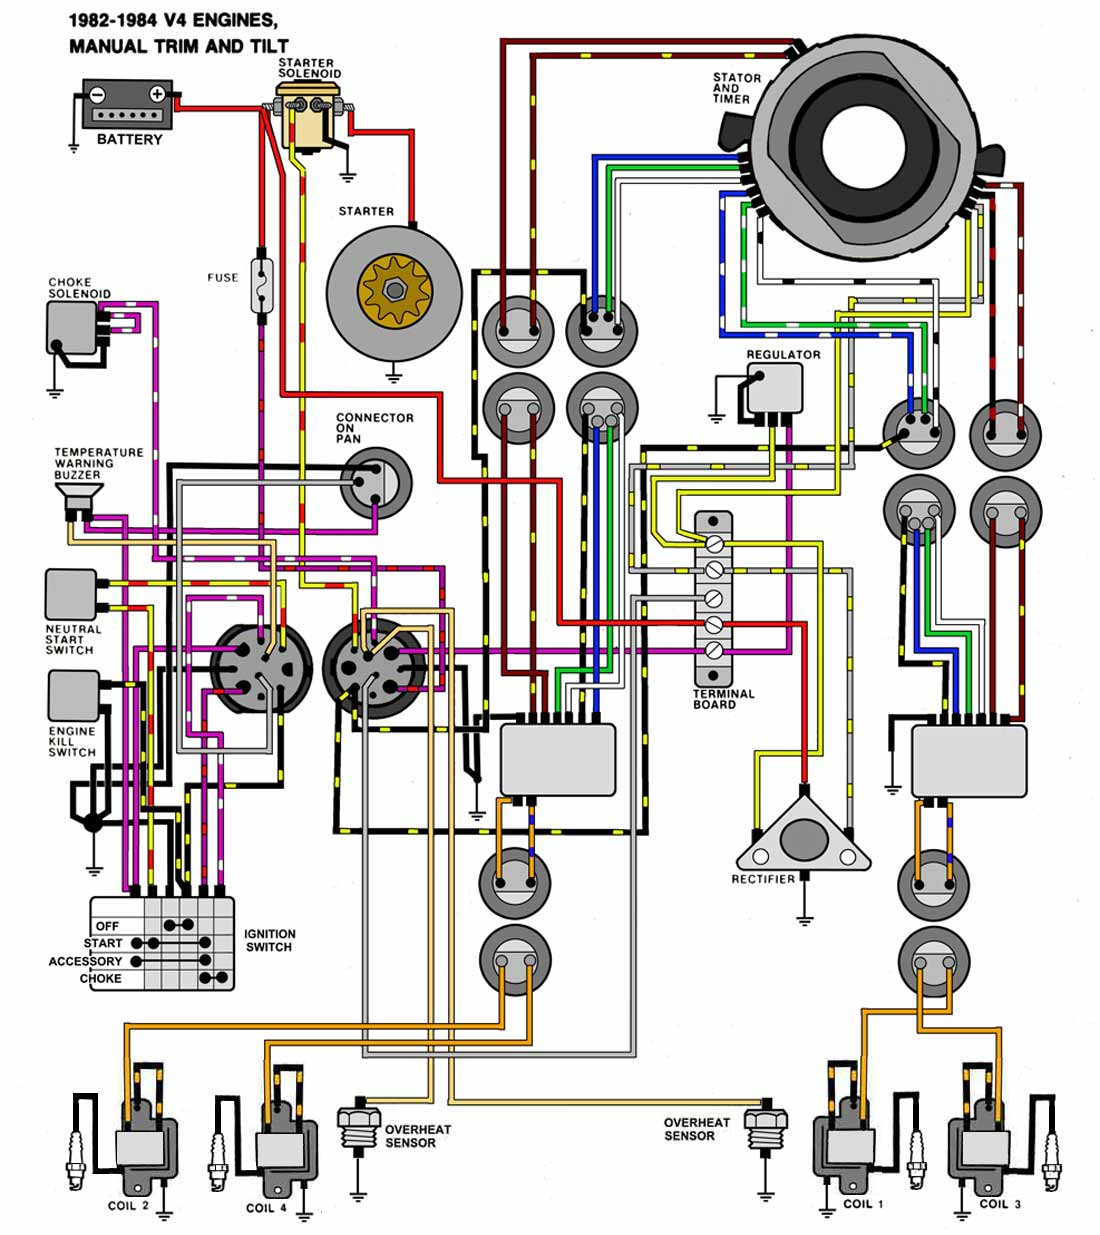 82_84_V4_NOTNT mastertech marine evinrude johnson outboard wiring diagrams 3 wire tilt trim wiring diagram at reclaimingppi.co